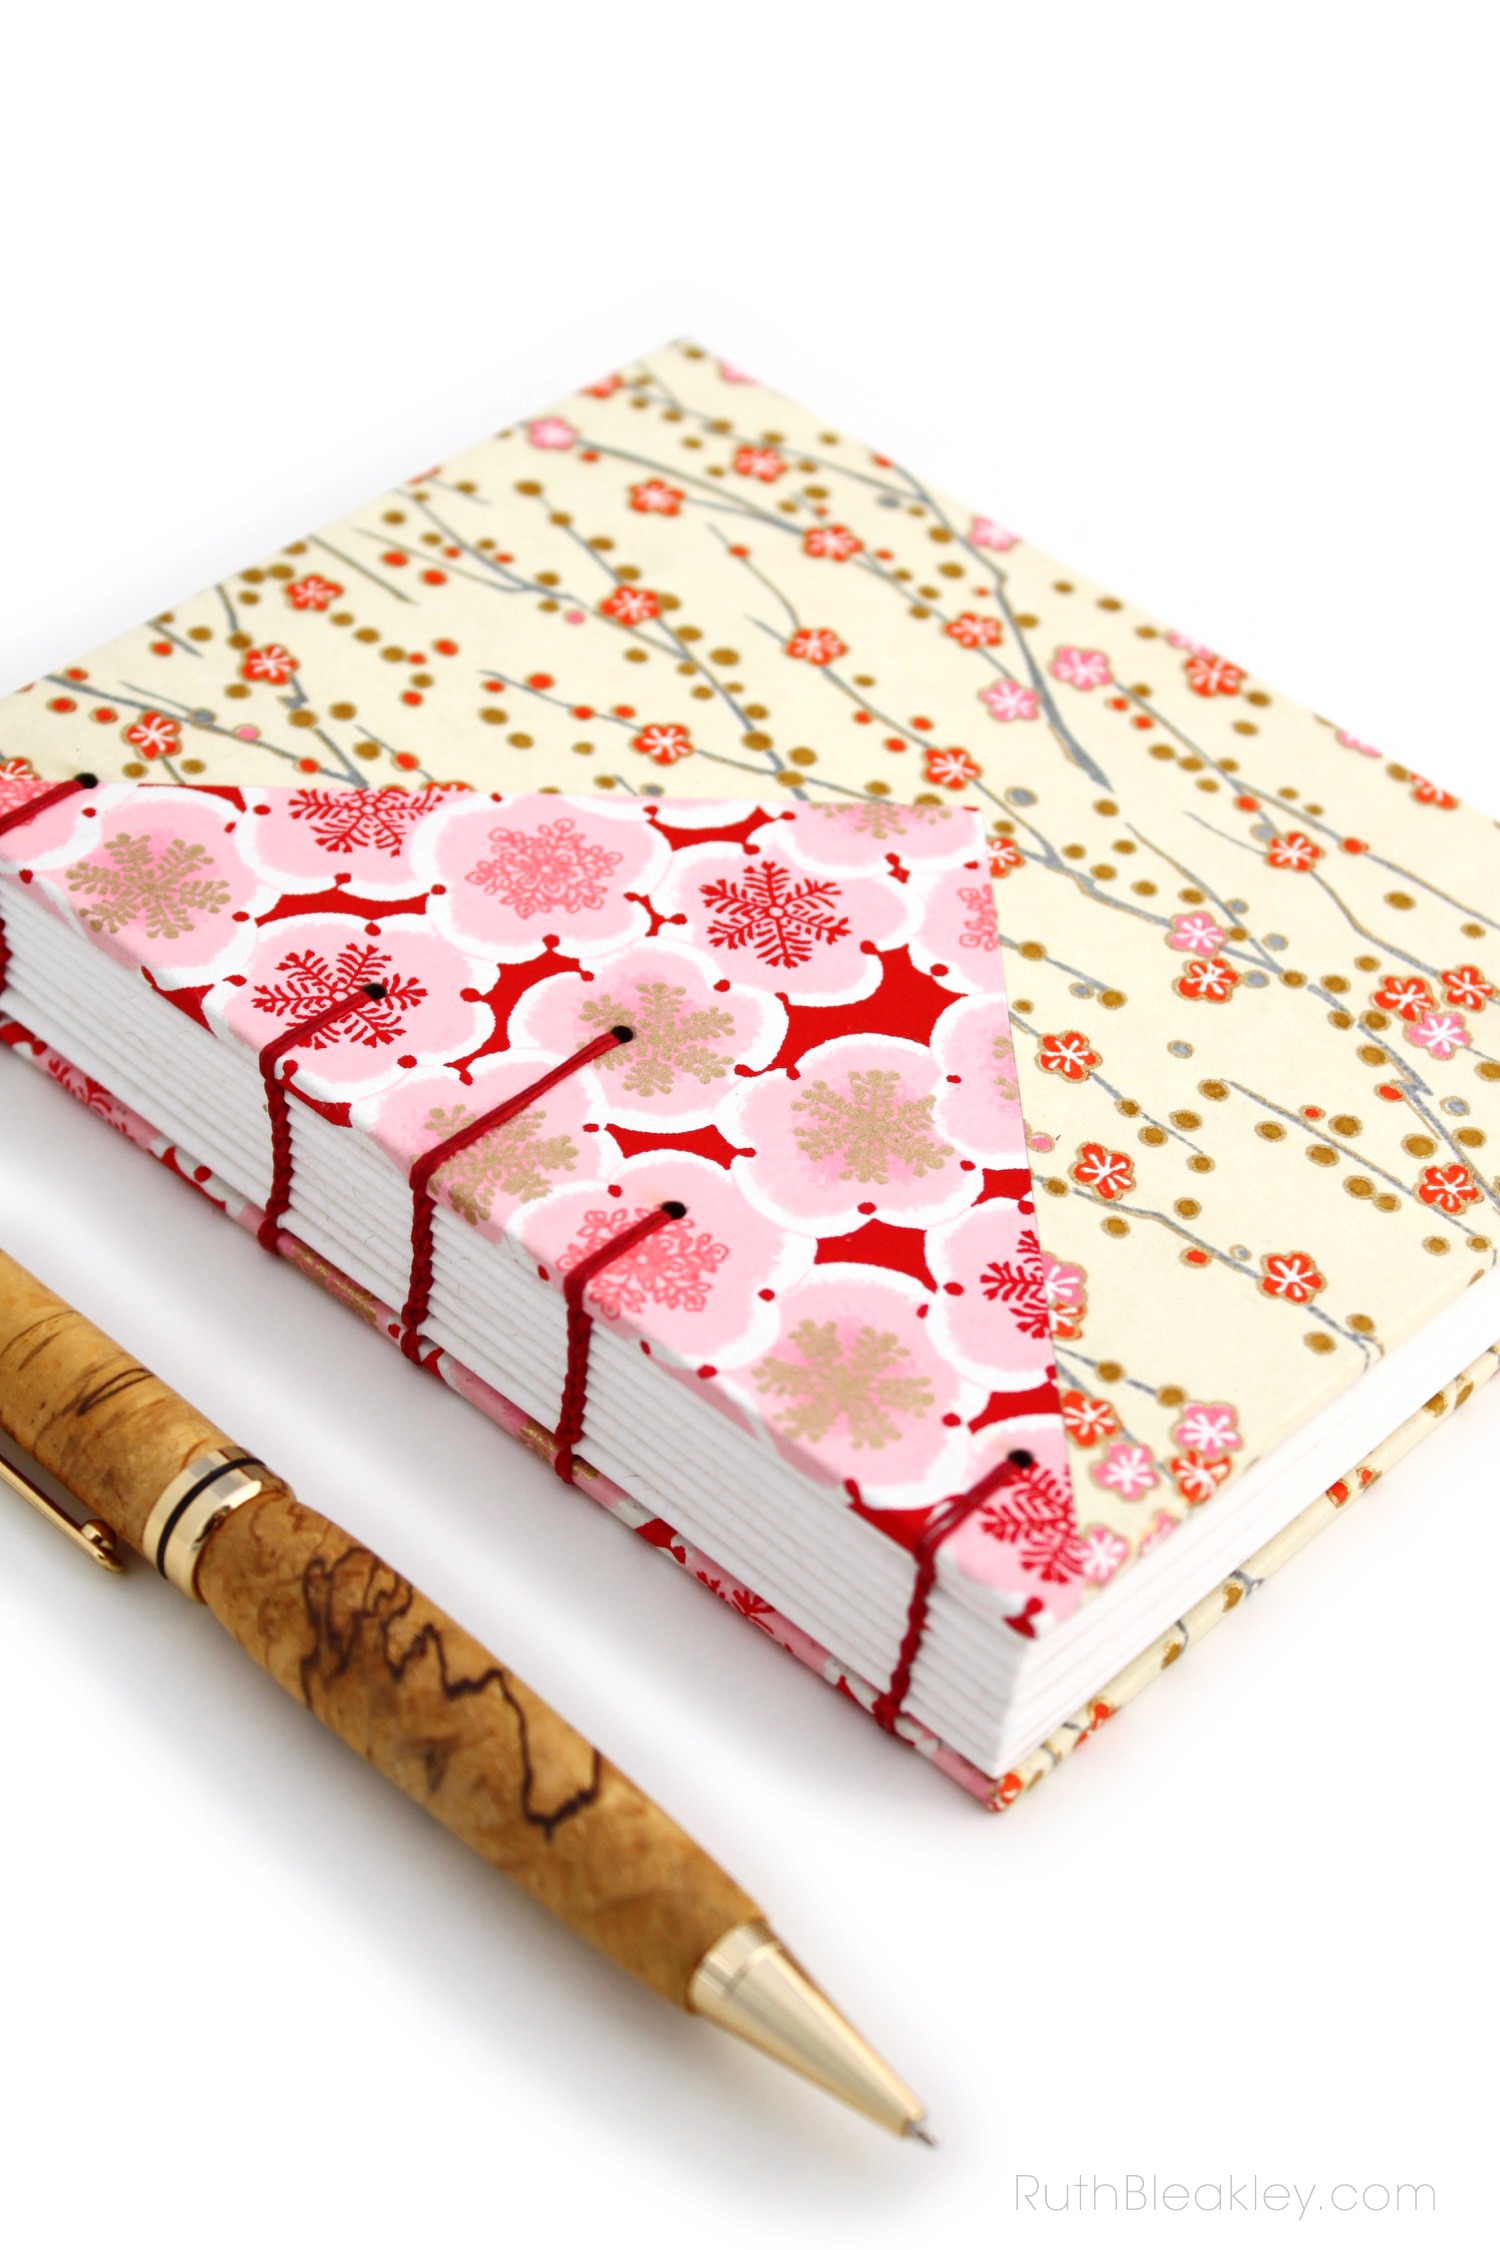 Cherry Blossom blank journal suitable for fountain pen made by Ruth Bleakley